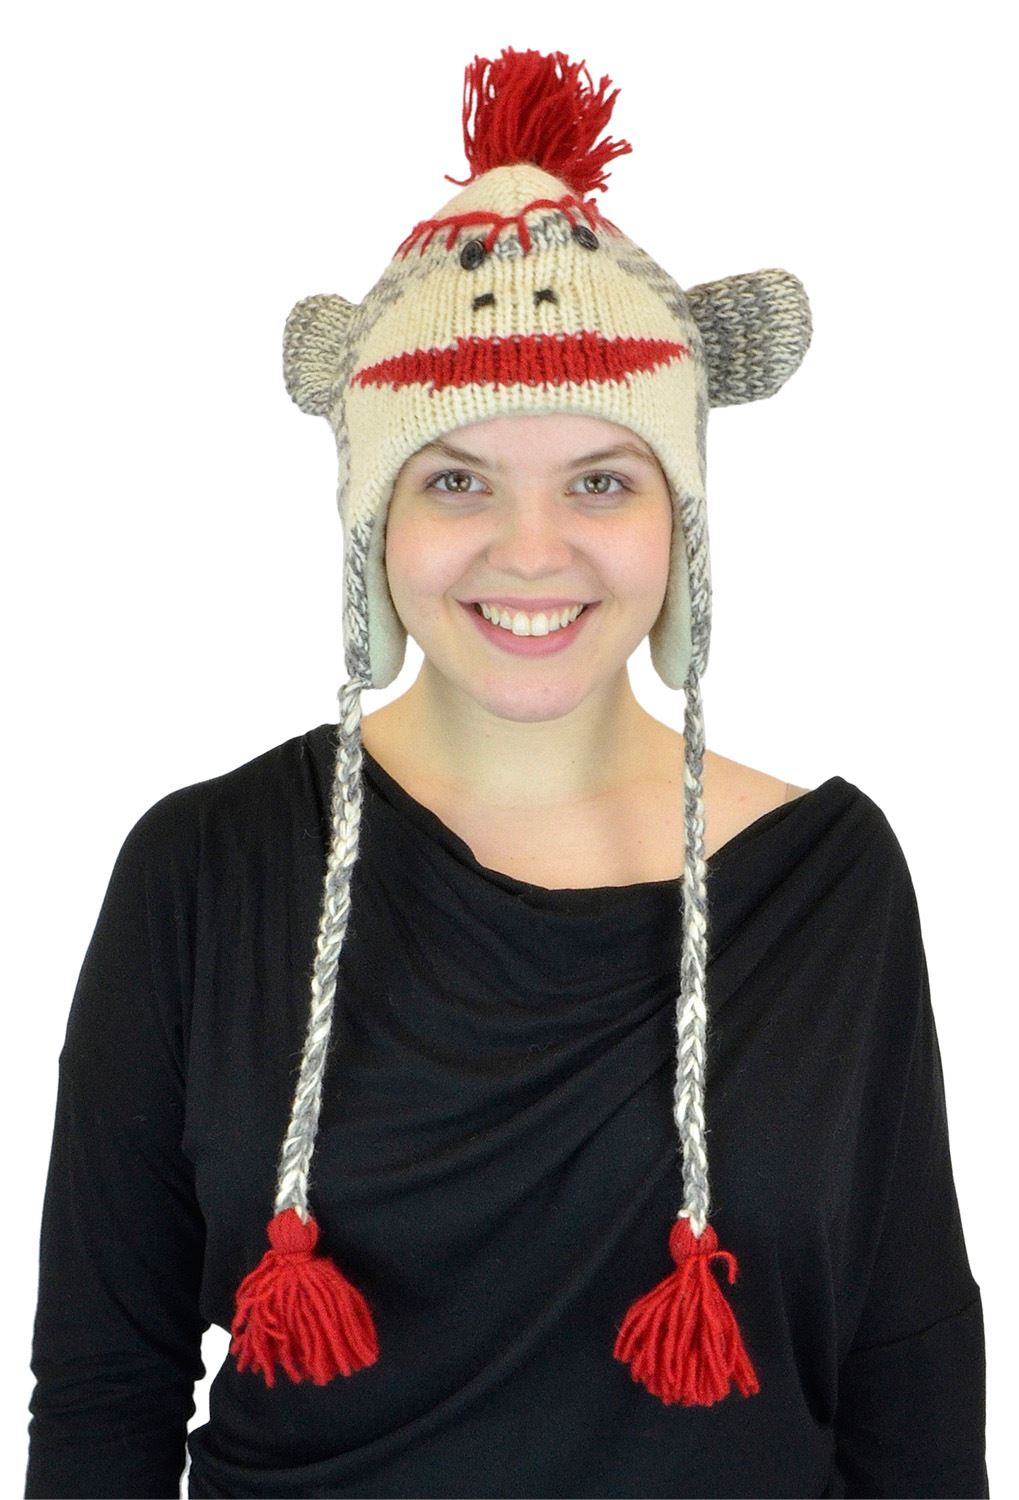 Adult Size Sock Monkey Wool Knit Hat with Red Poms